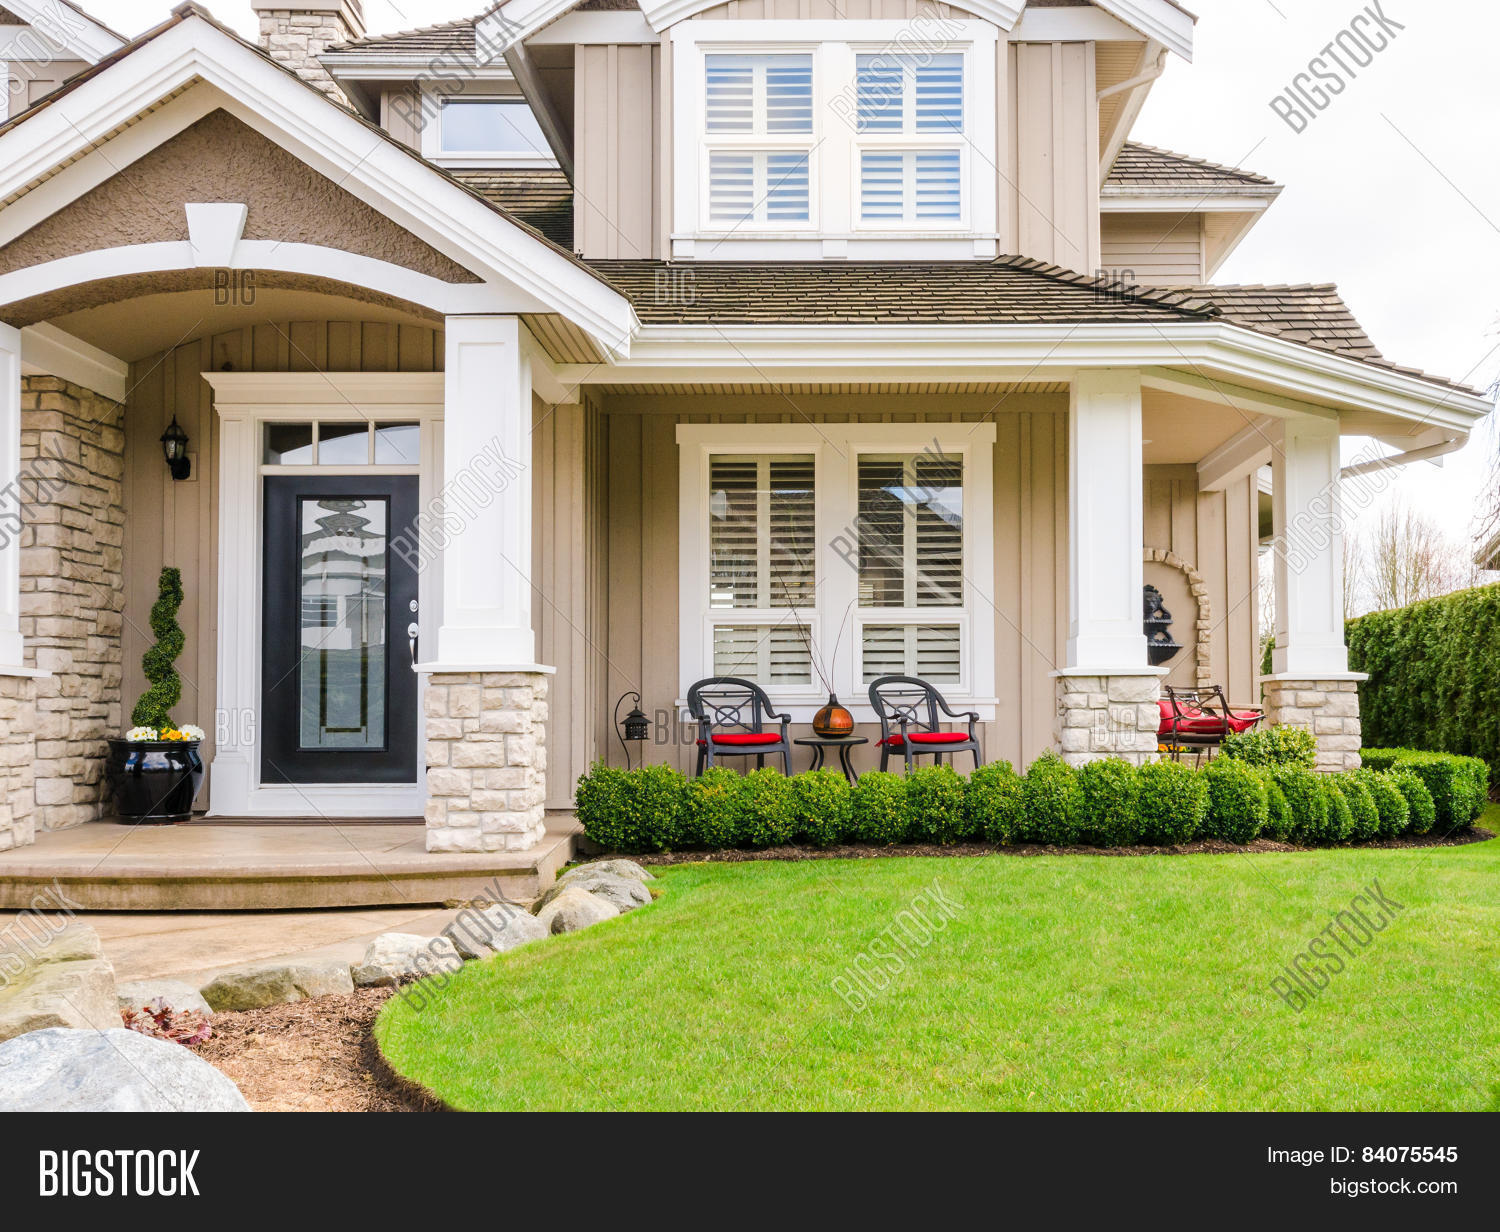 Entrance Luxury House Image Photo Free Trial Bigstock